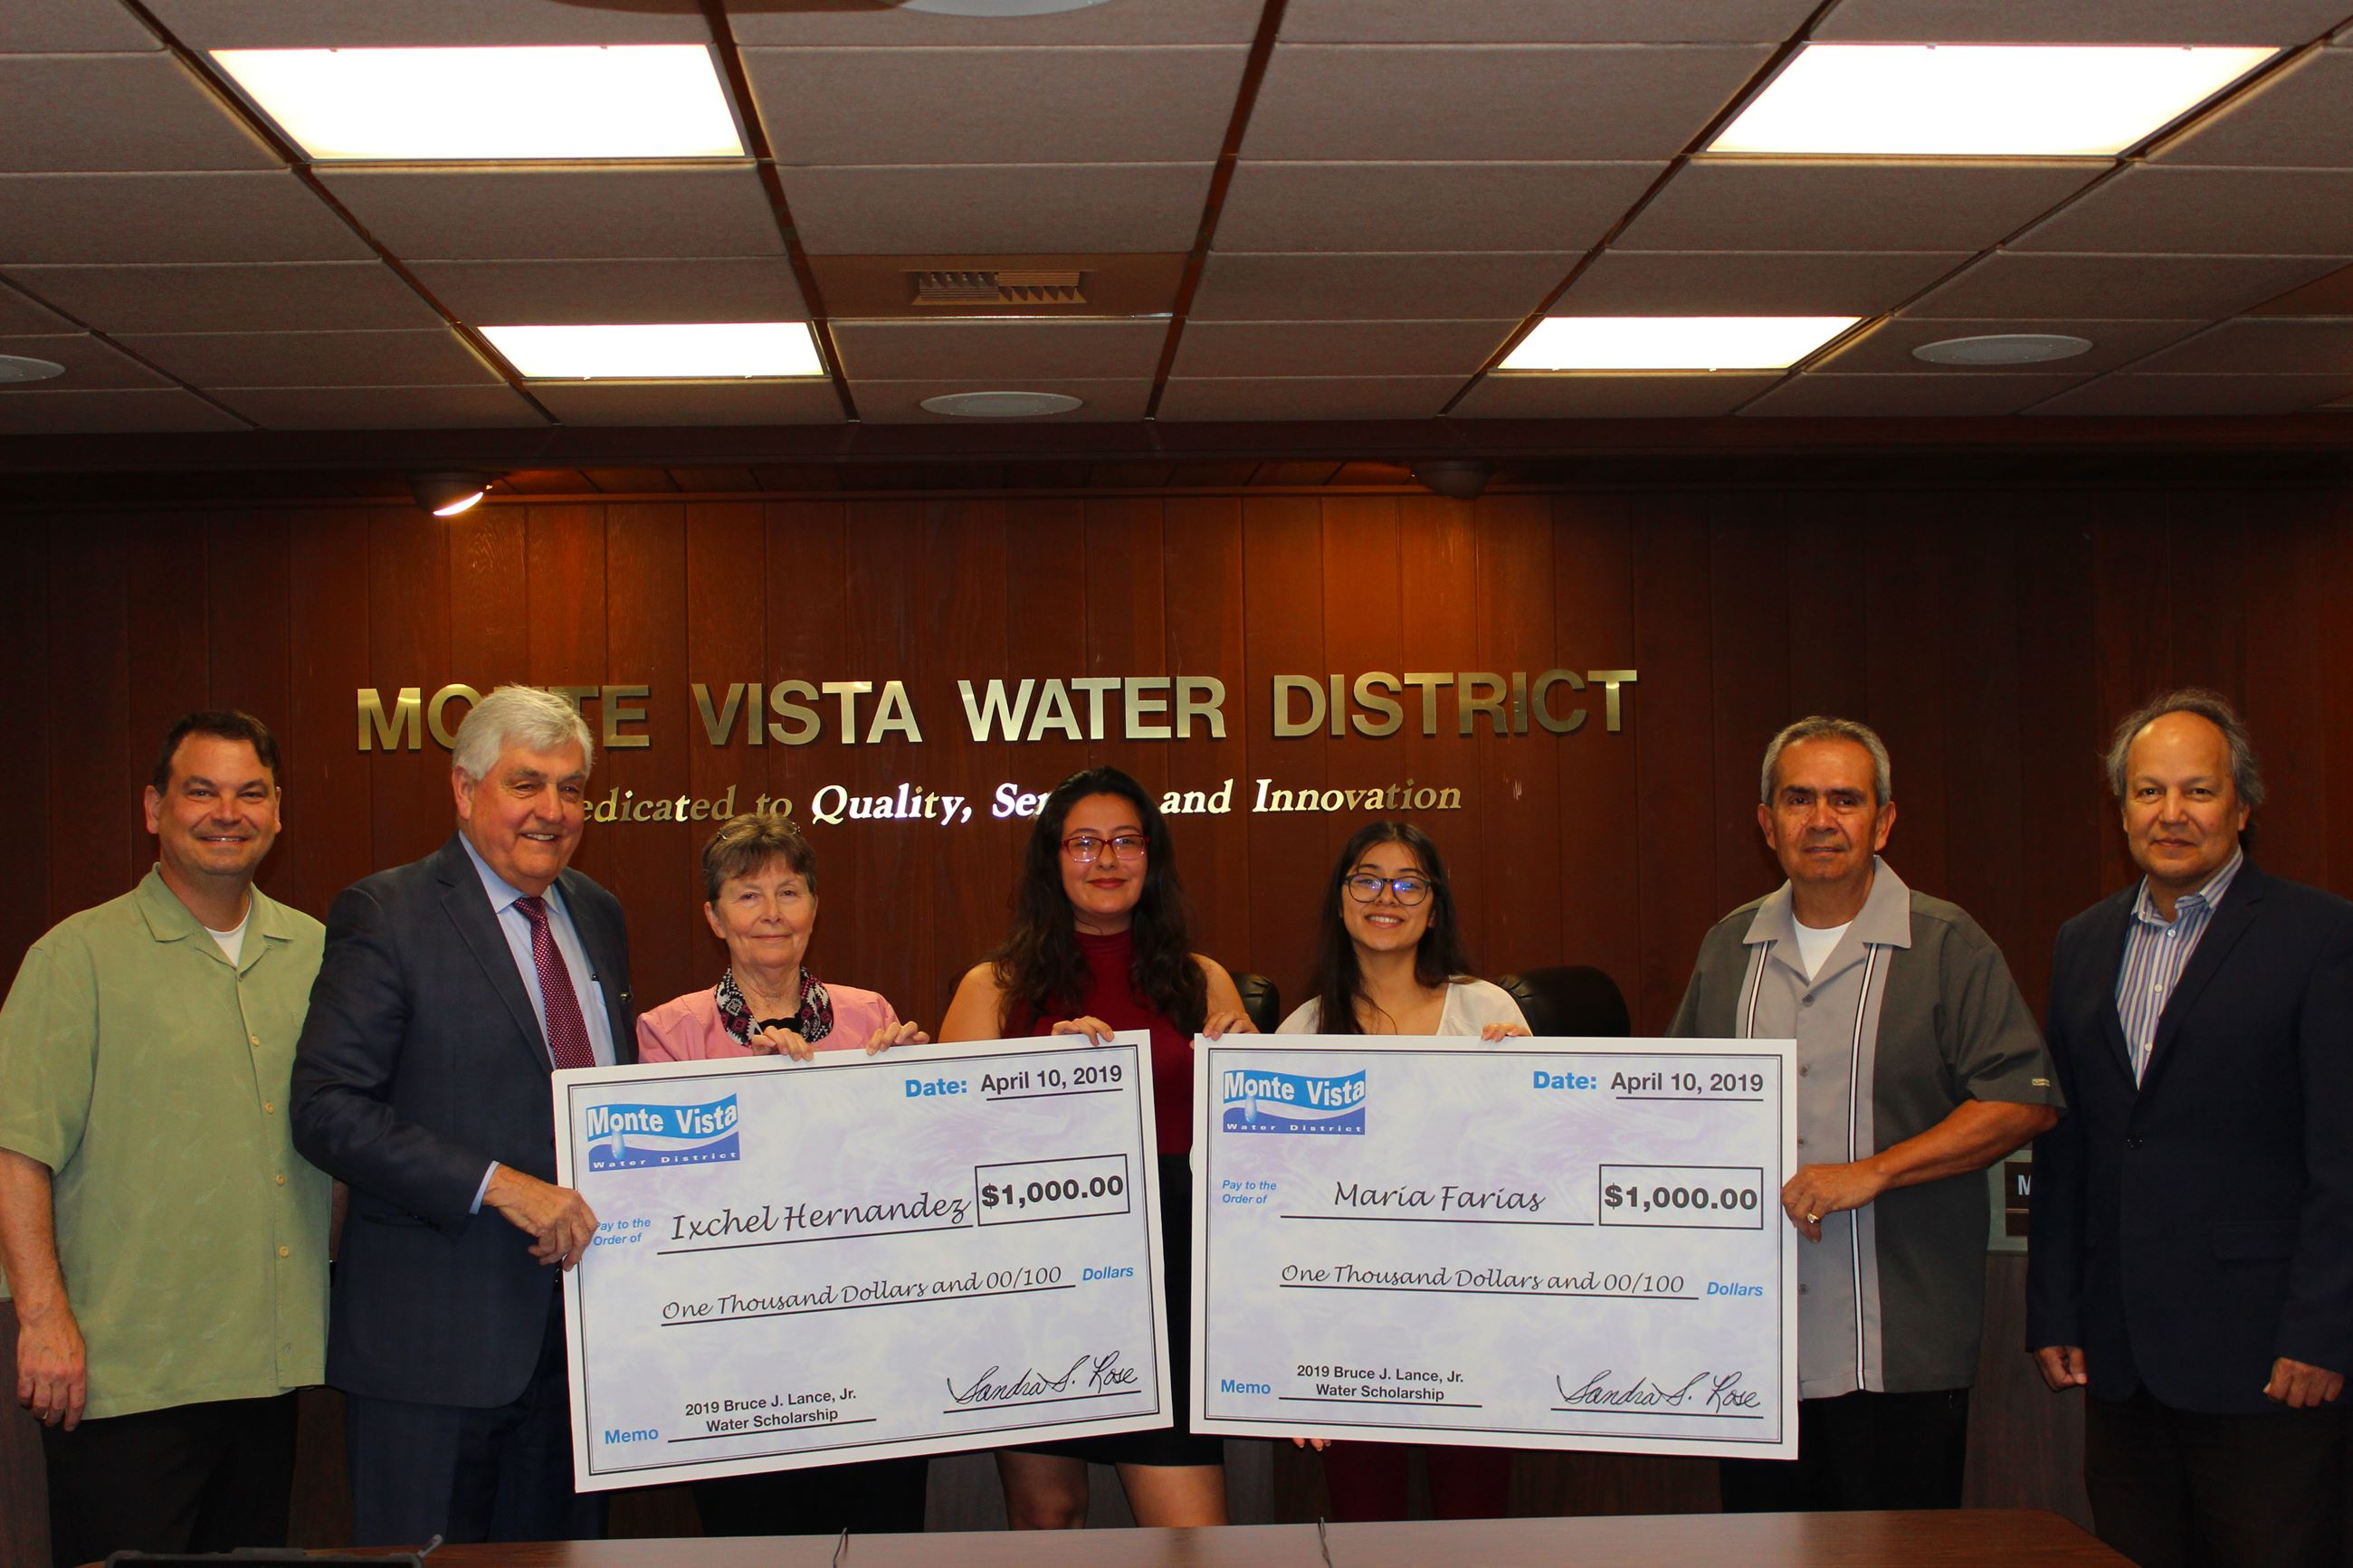 Scholarship winners pose with members of MVWD's Board of Directors after being presented with cer